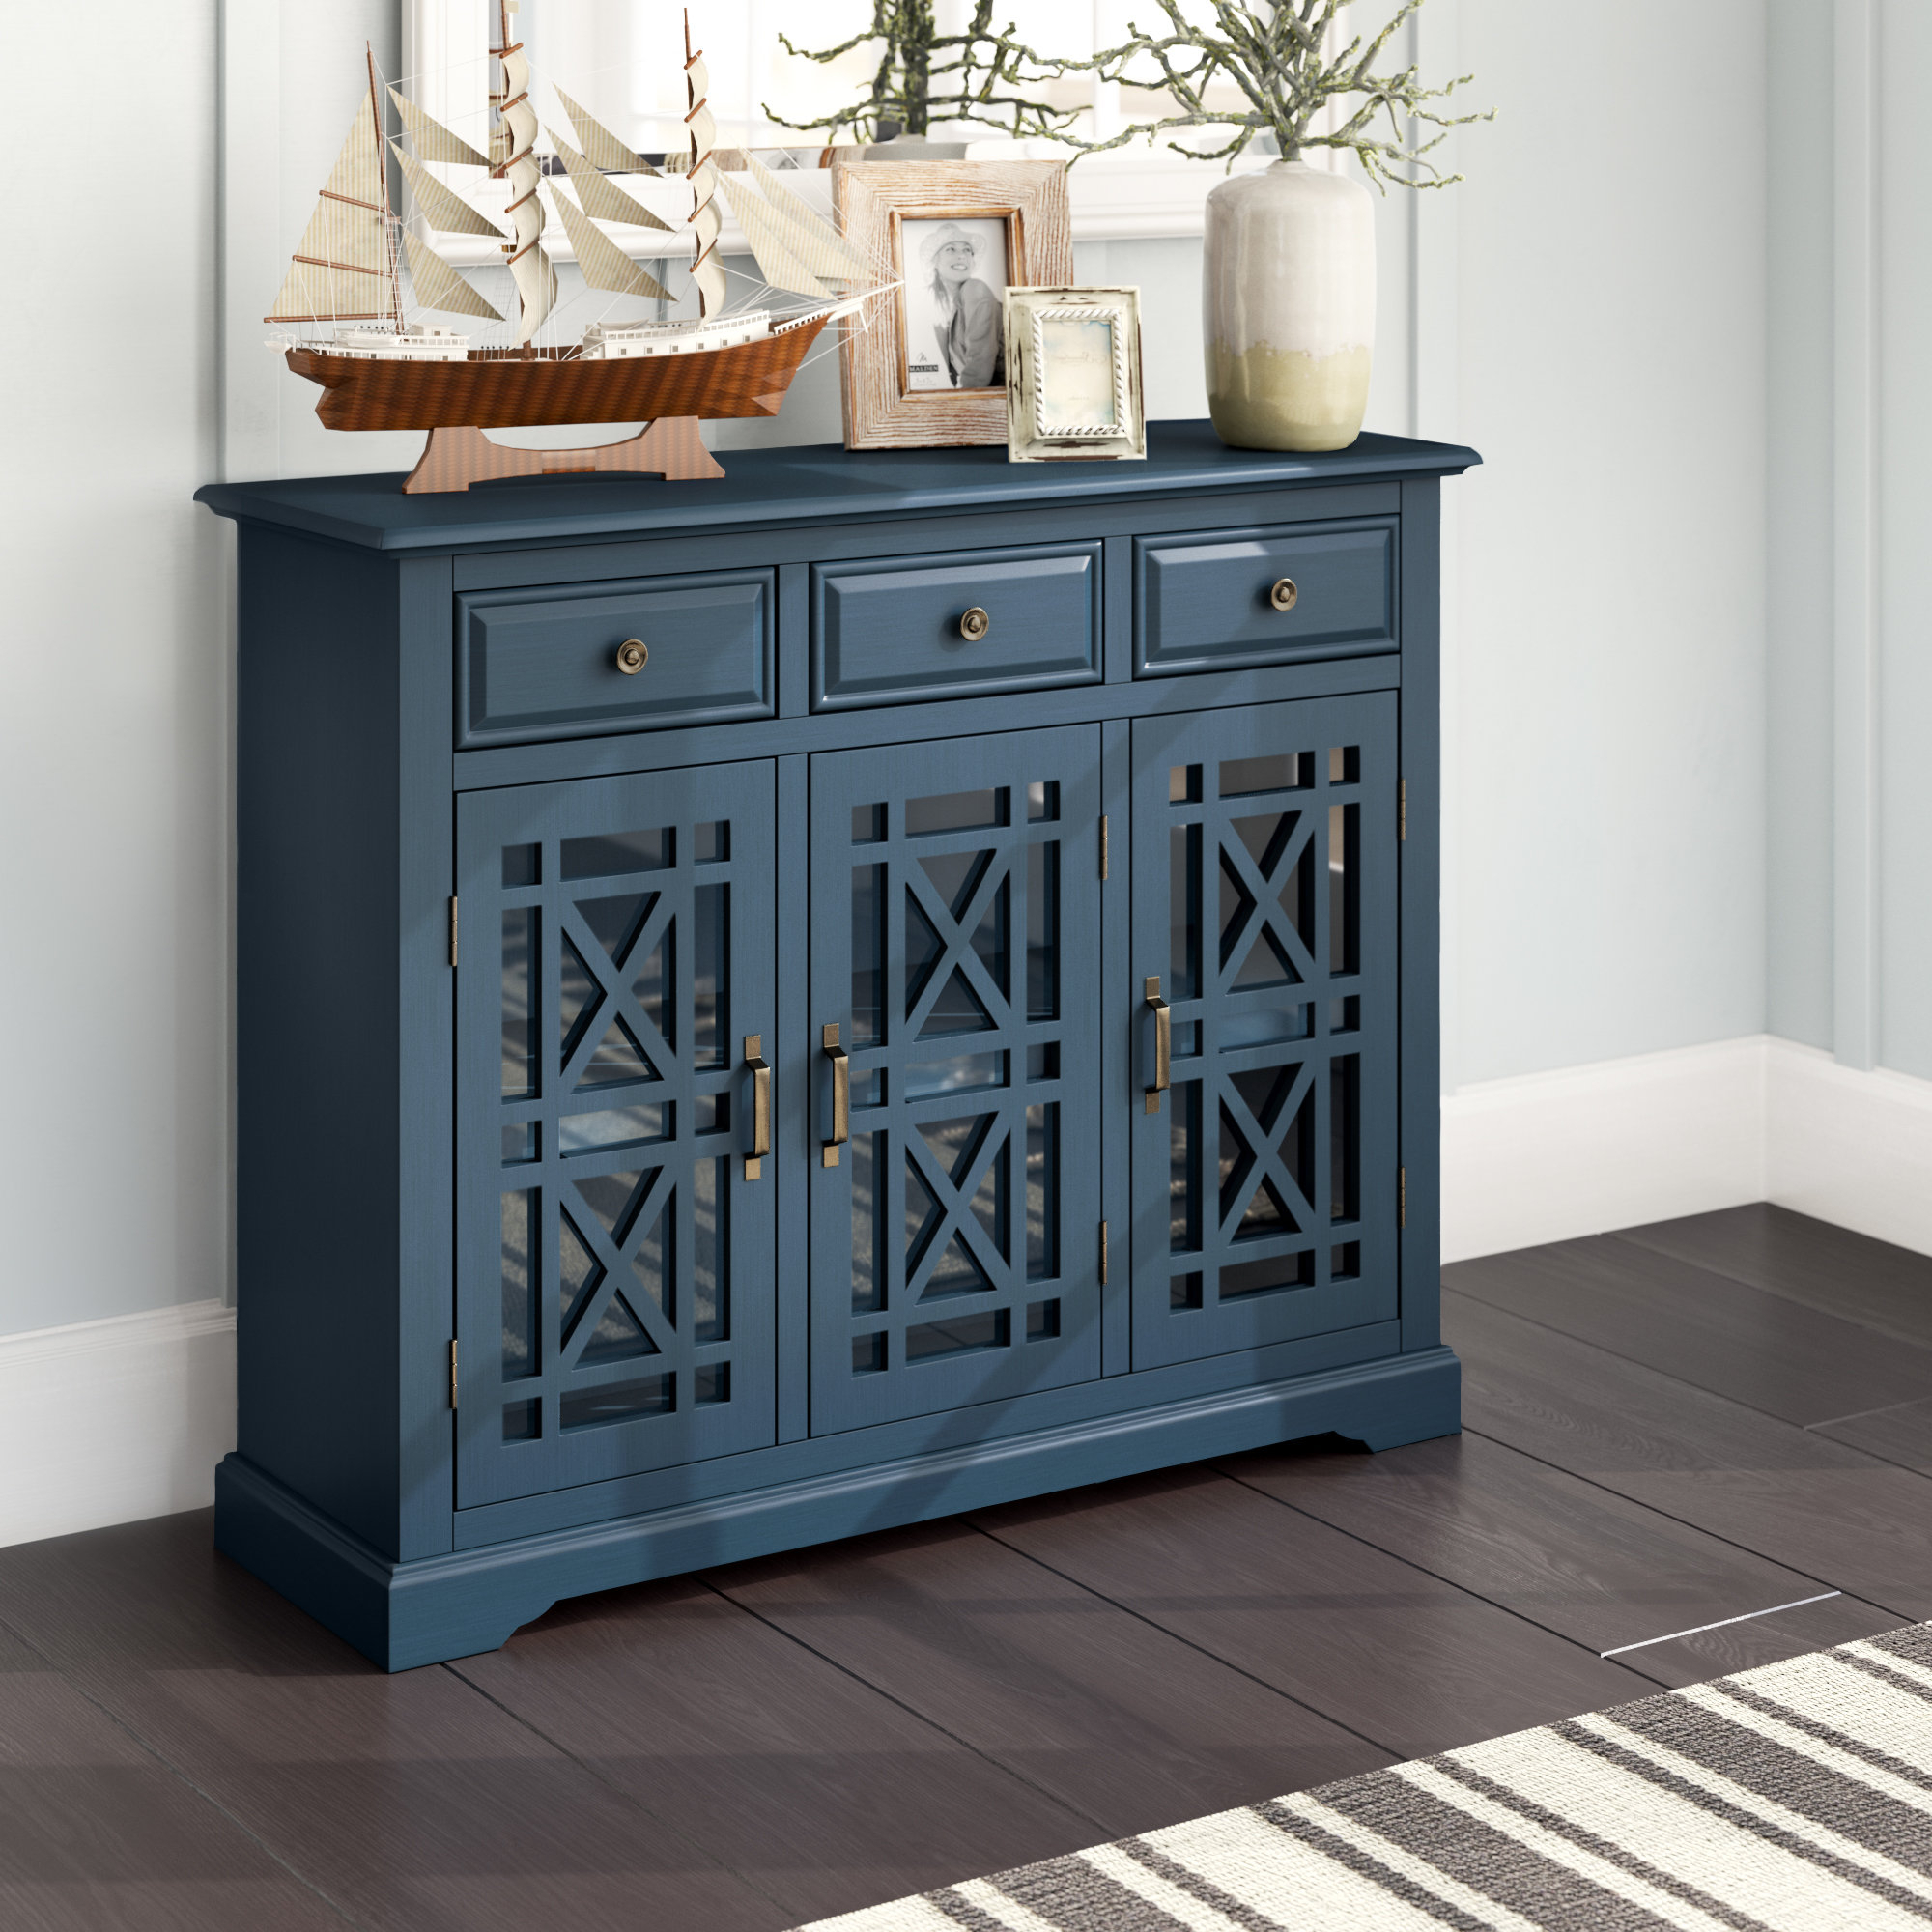 Sideboards & Buffet Tables You'll Love In 2019 | Wayfair Throughout Chicoree Charlena Sideboards (View 2 of 20)